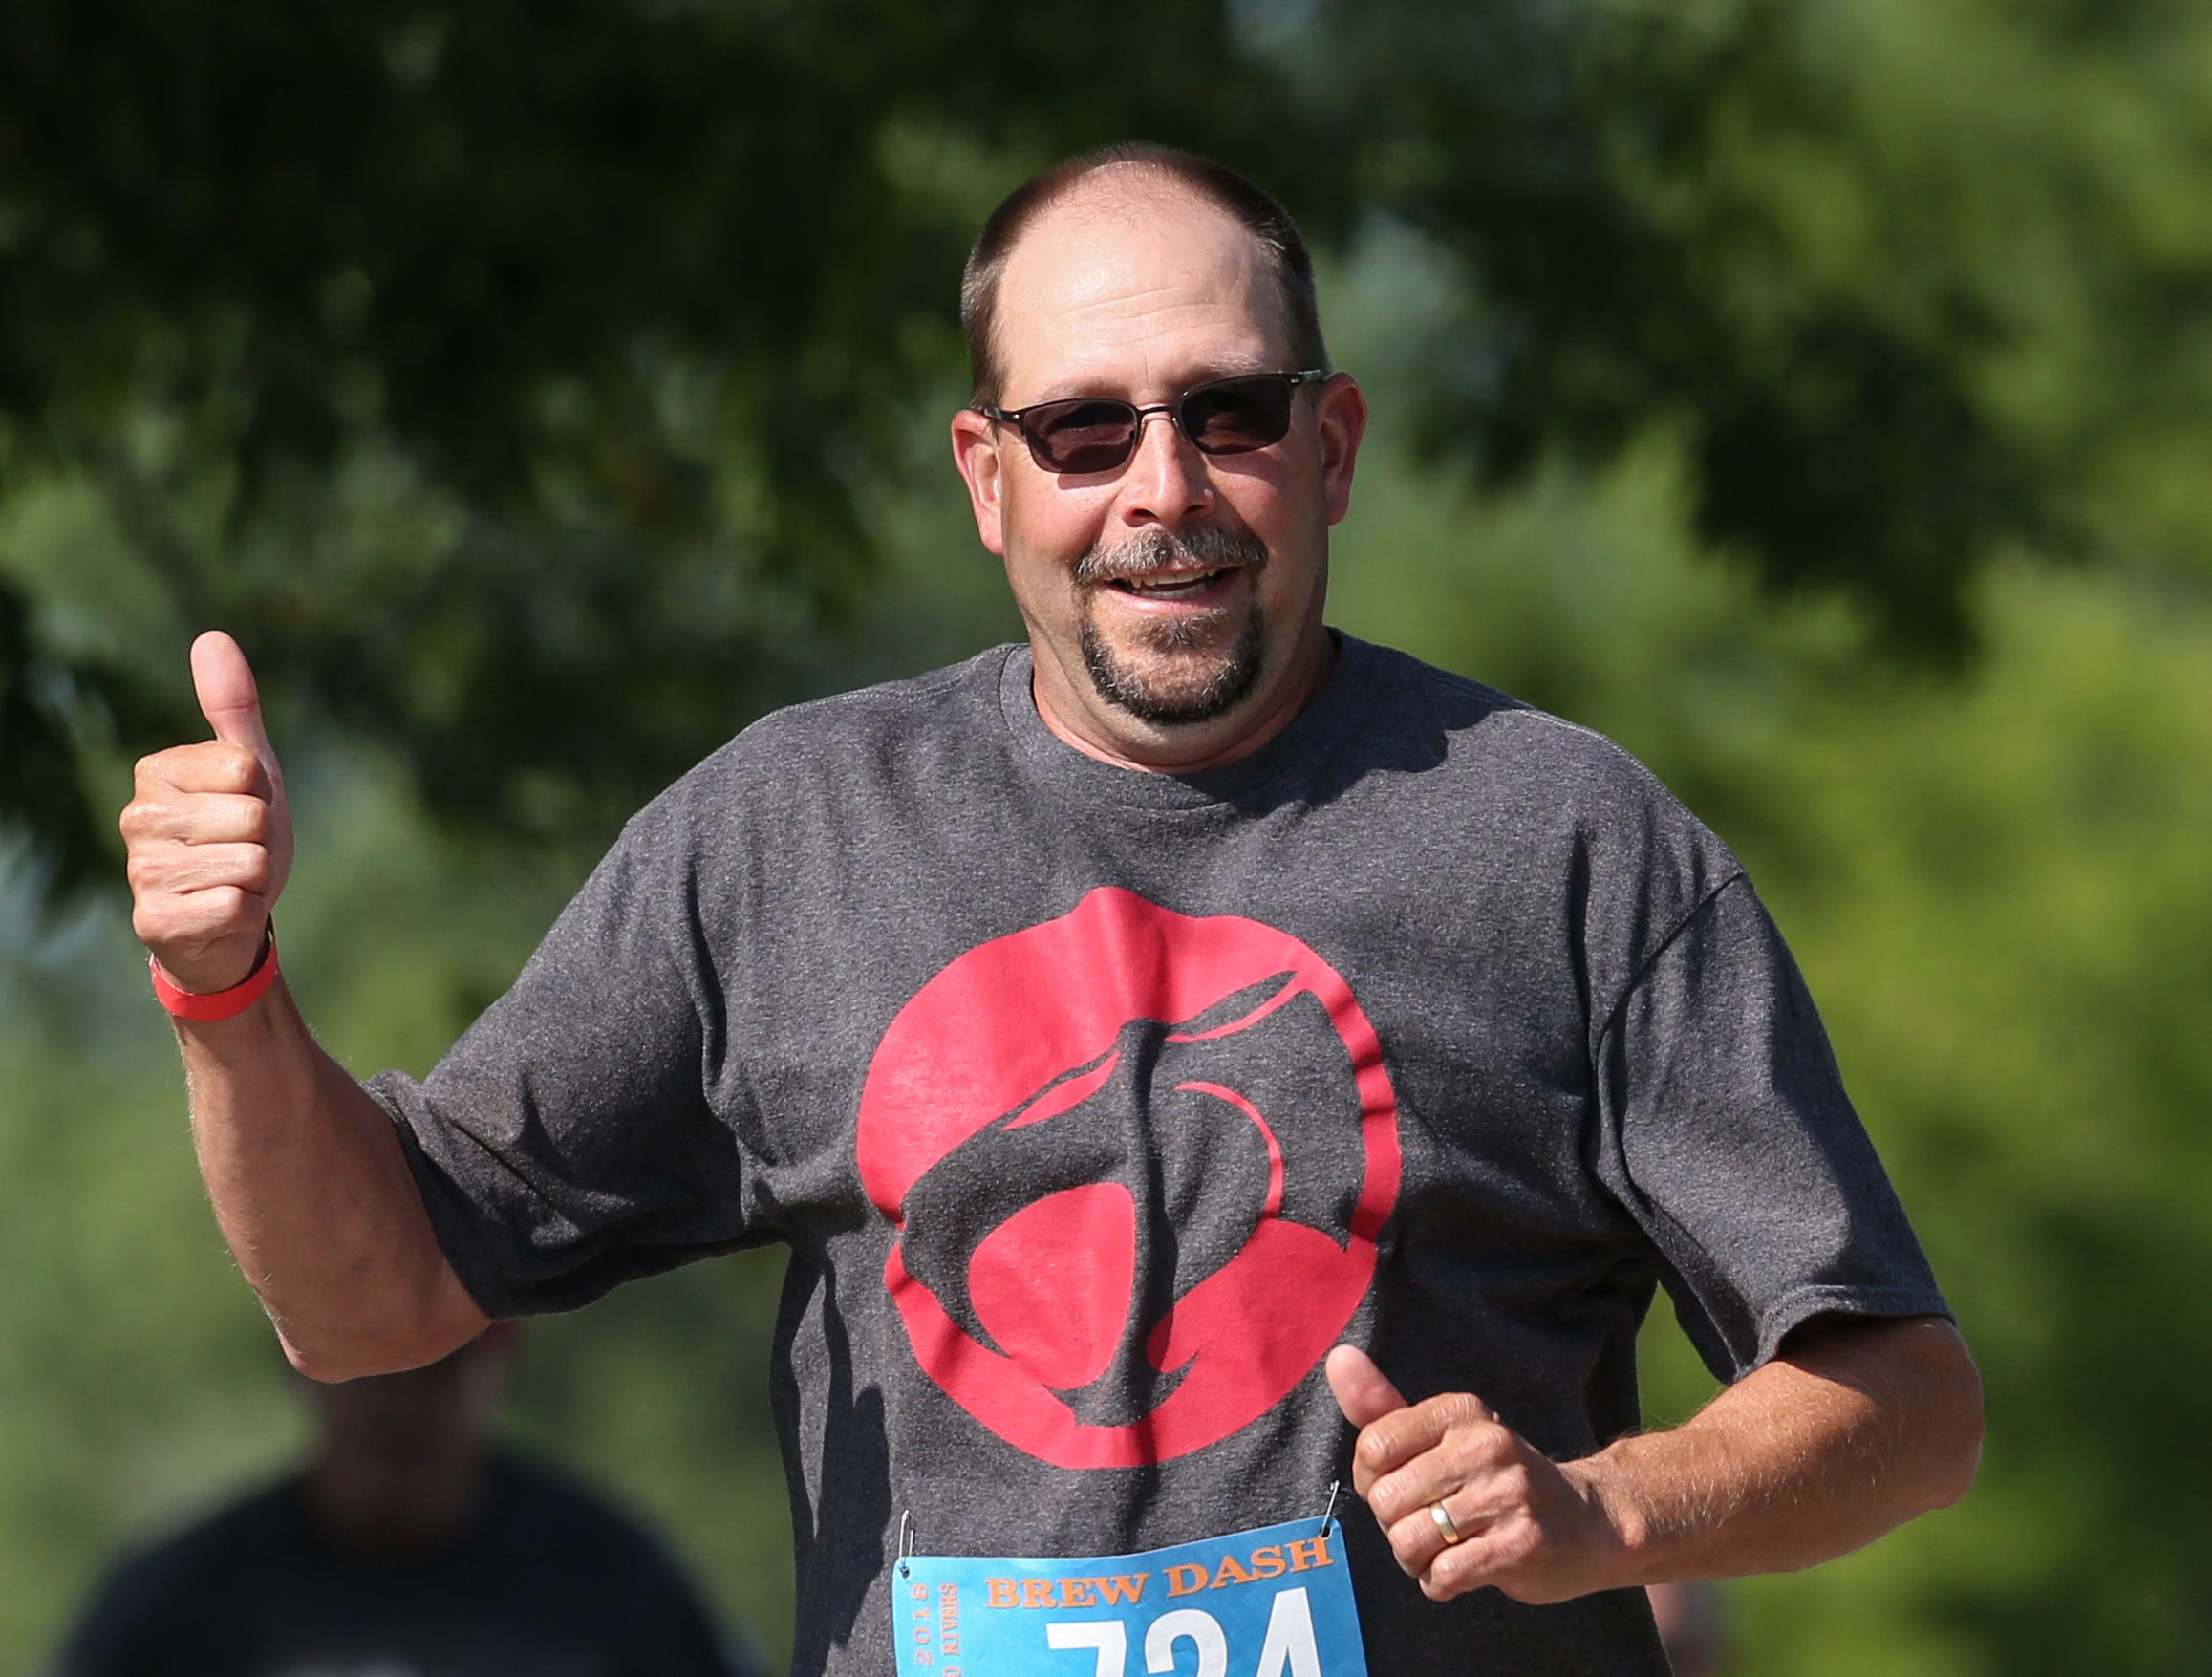 Bryan Elias gives a thumbs up during the 5K Brew Dash Saturday, July 28, 2018, in Two Rivers, Wis. Josh Clark/USA TODAY NETWORK-Wisconsin